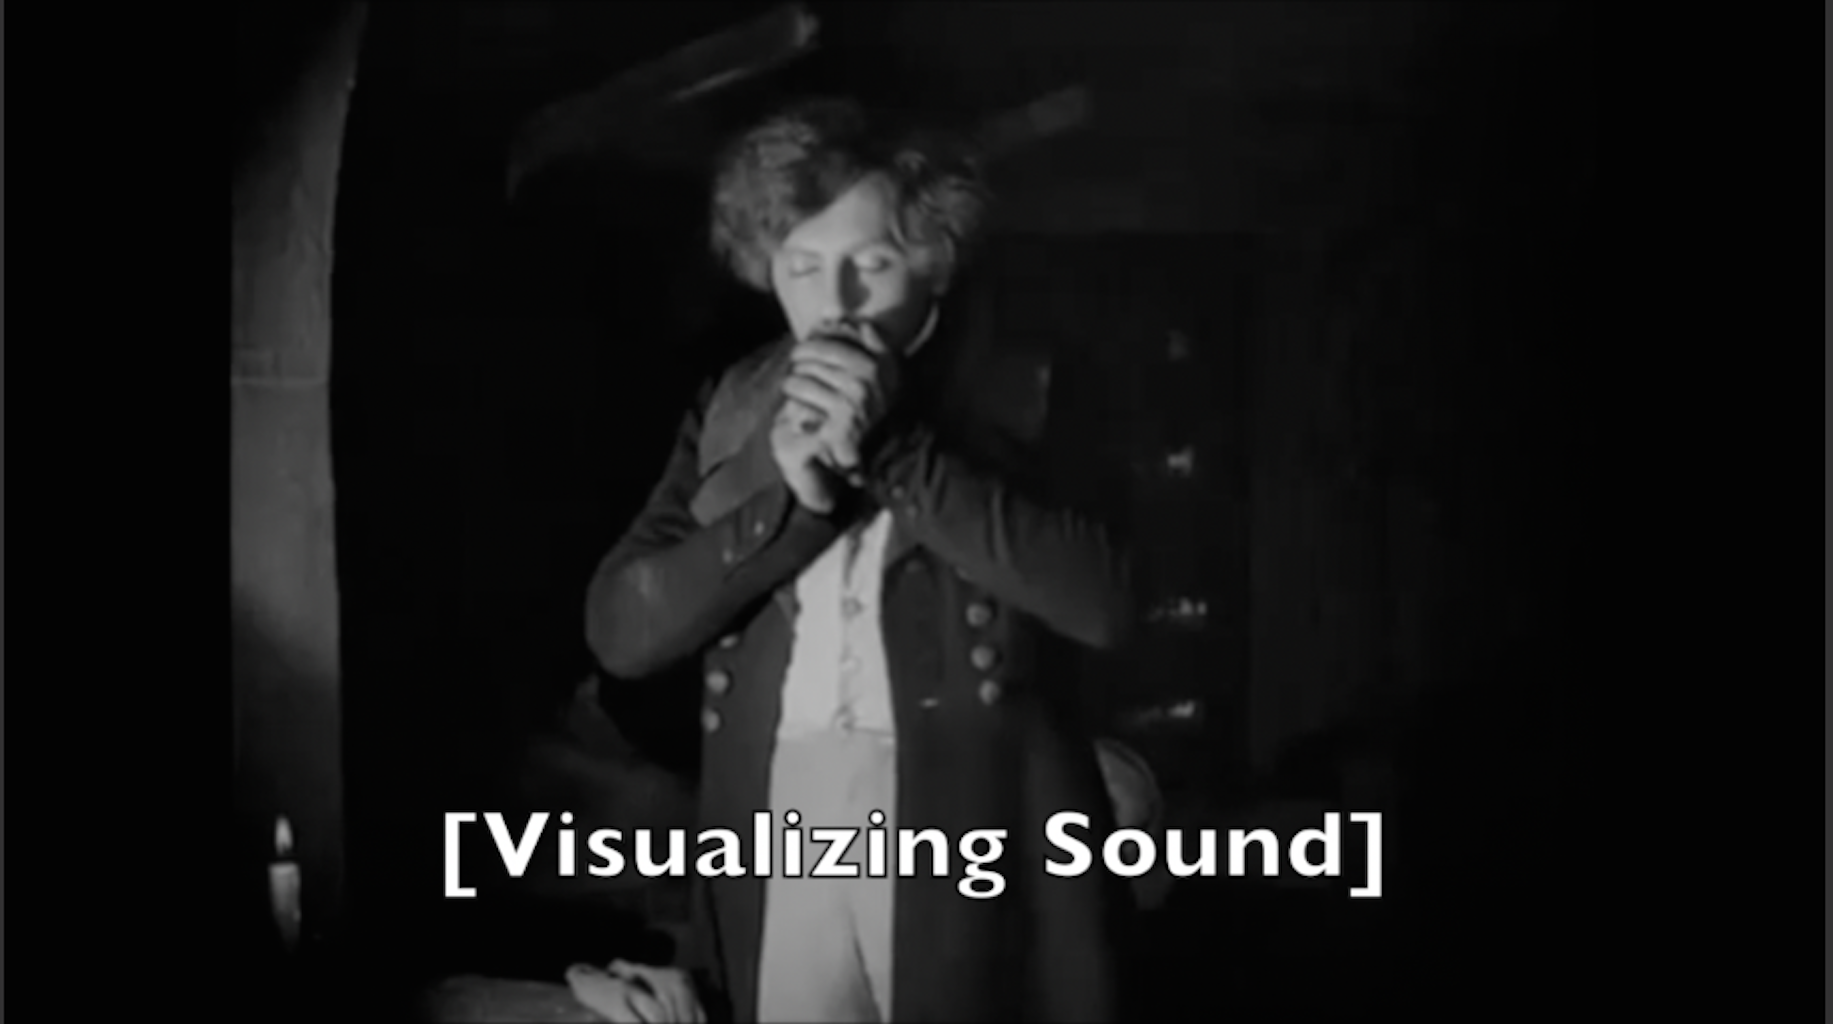 """Image of a man kissing something in his hands, with a the title """"Visualizing Sound"""" in brackets."""